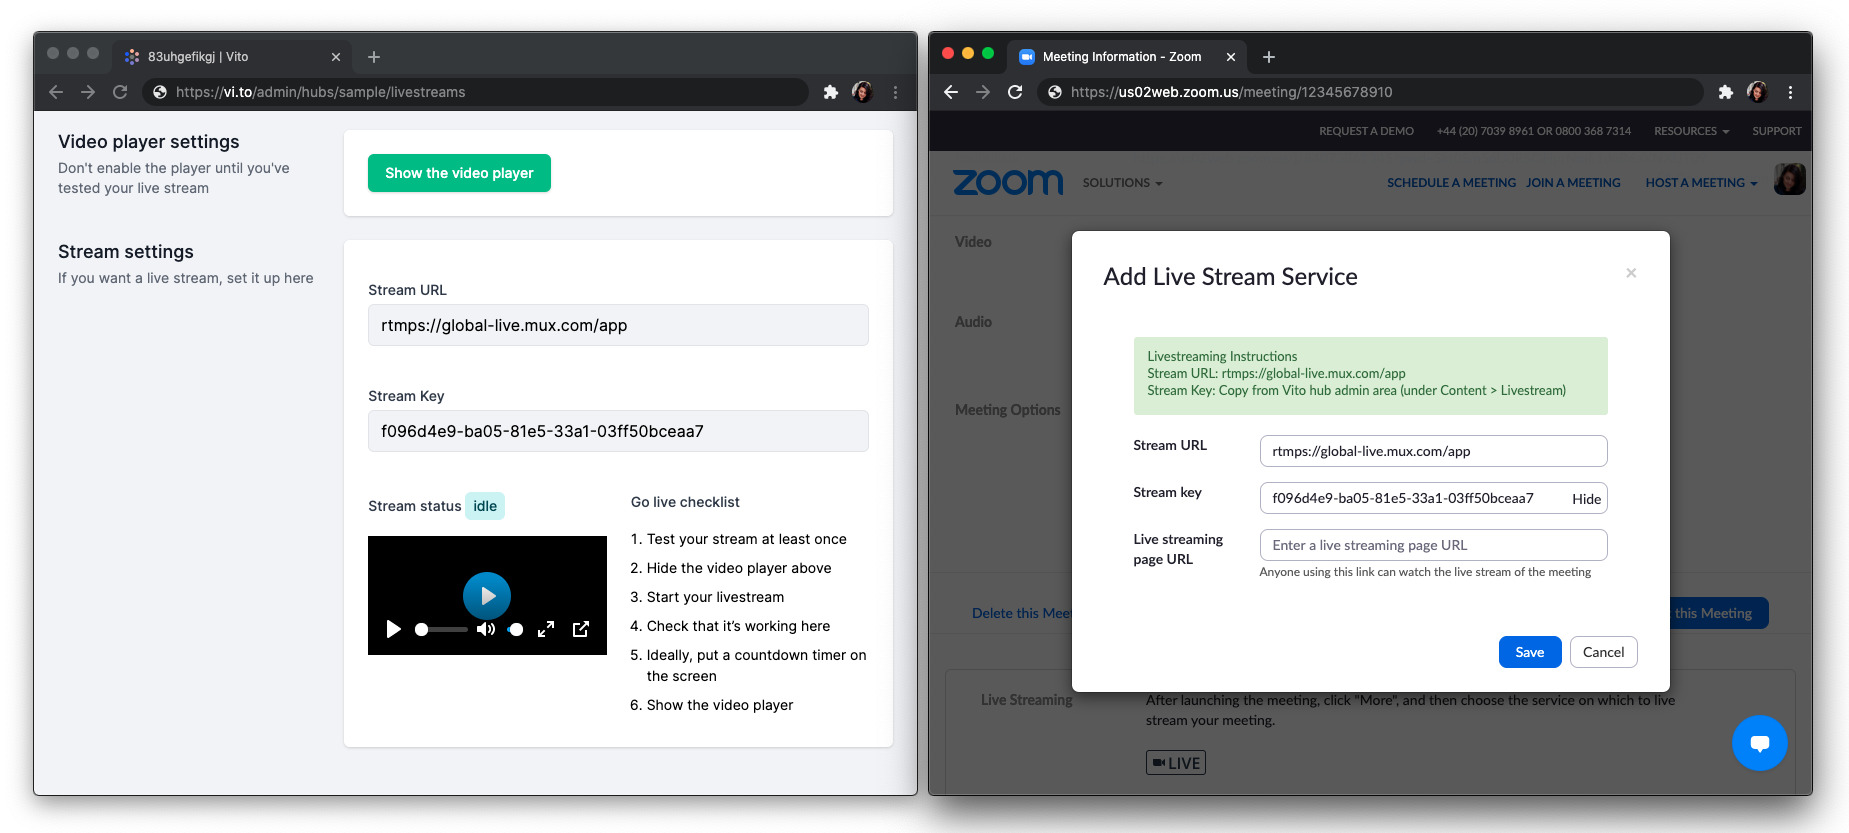 Side-by-side screenshots of Vito and Zoom stream settings